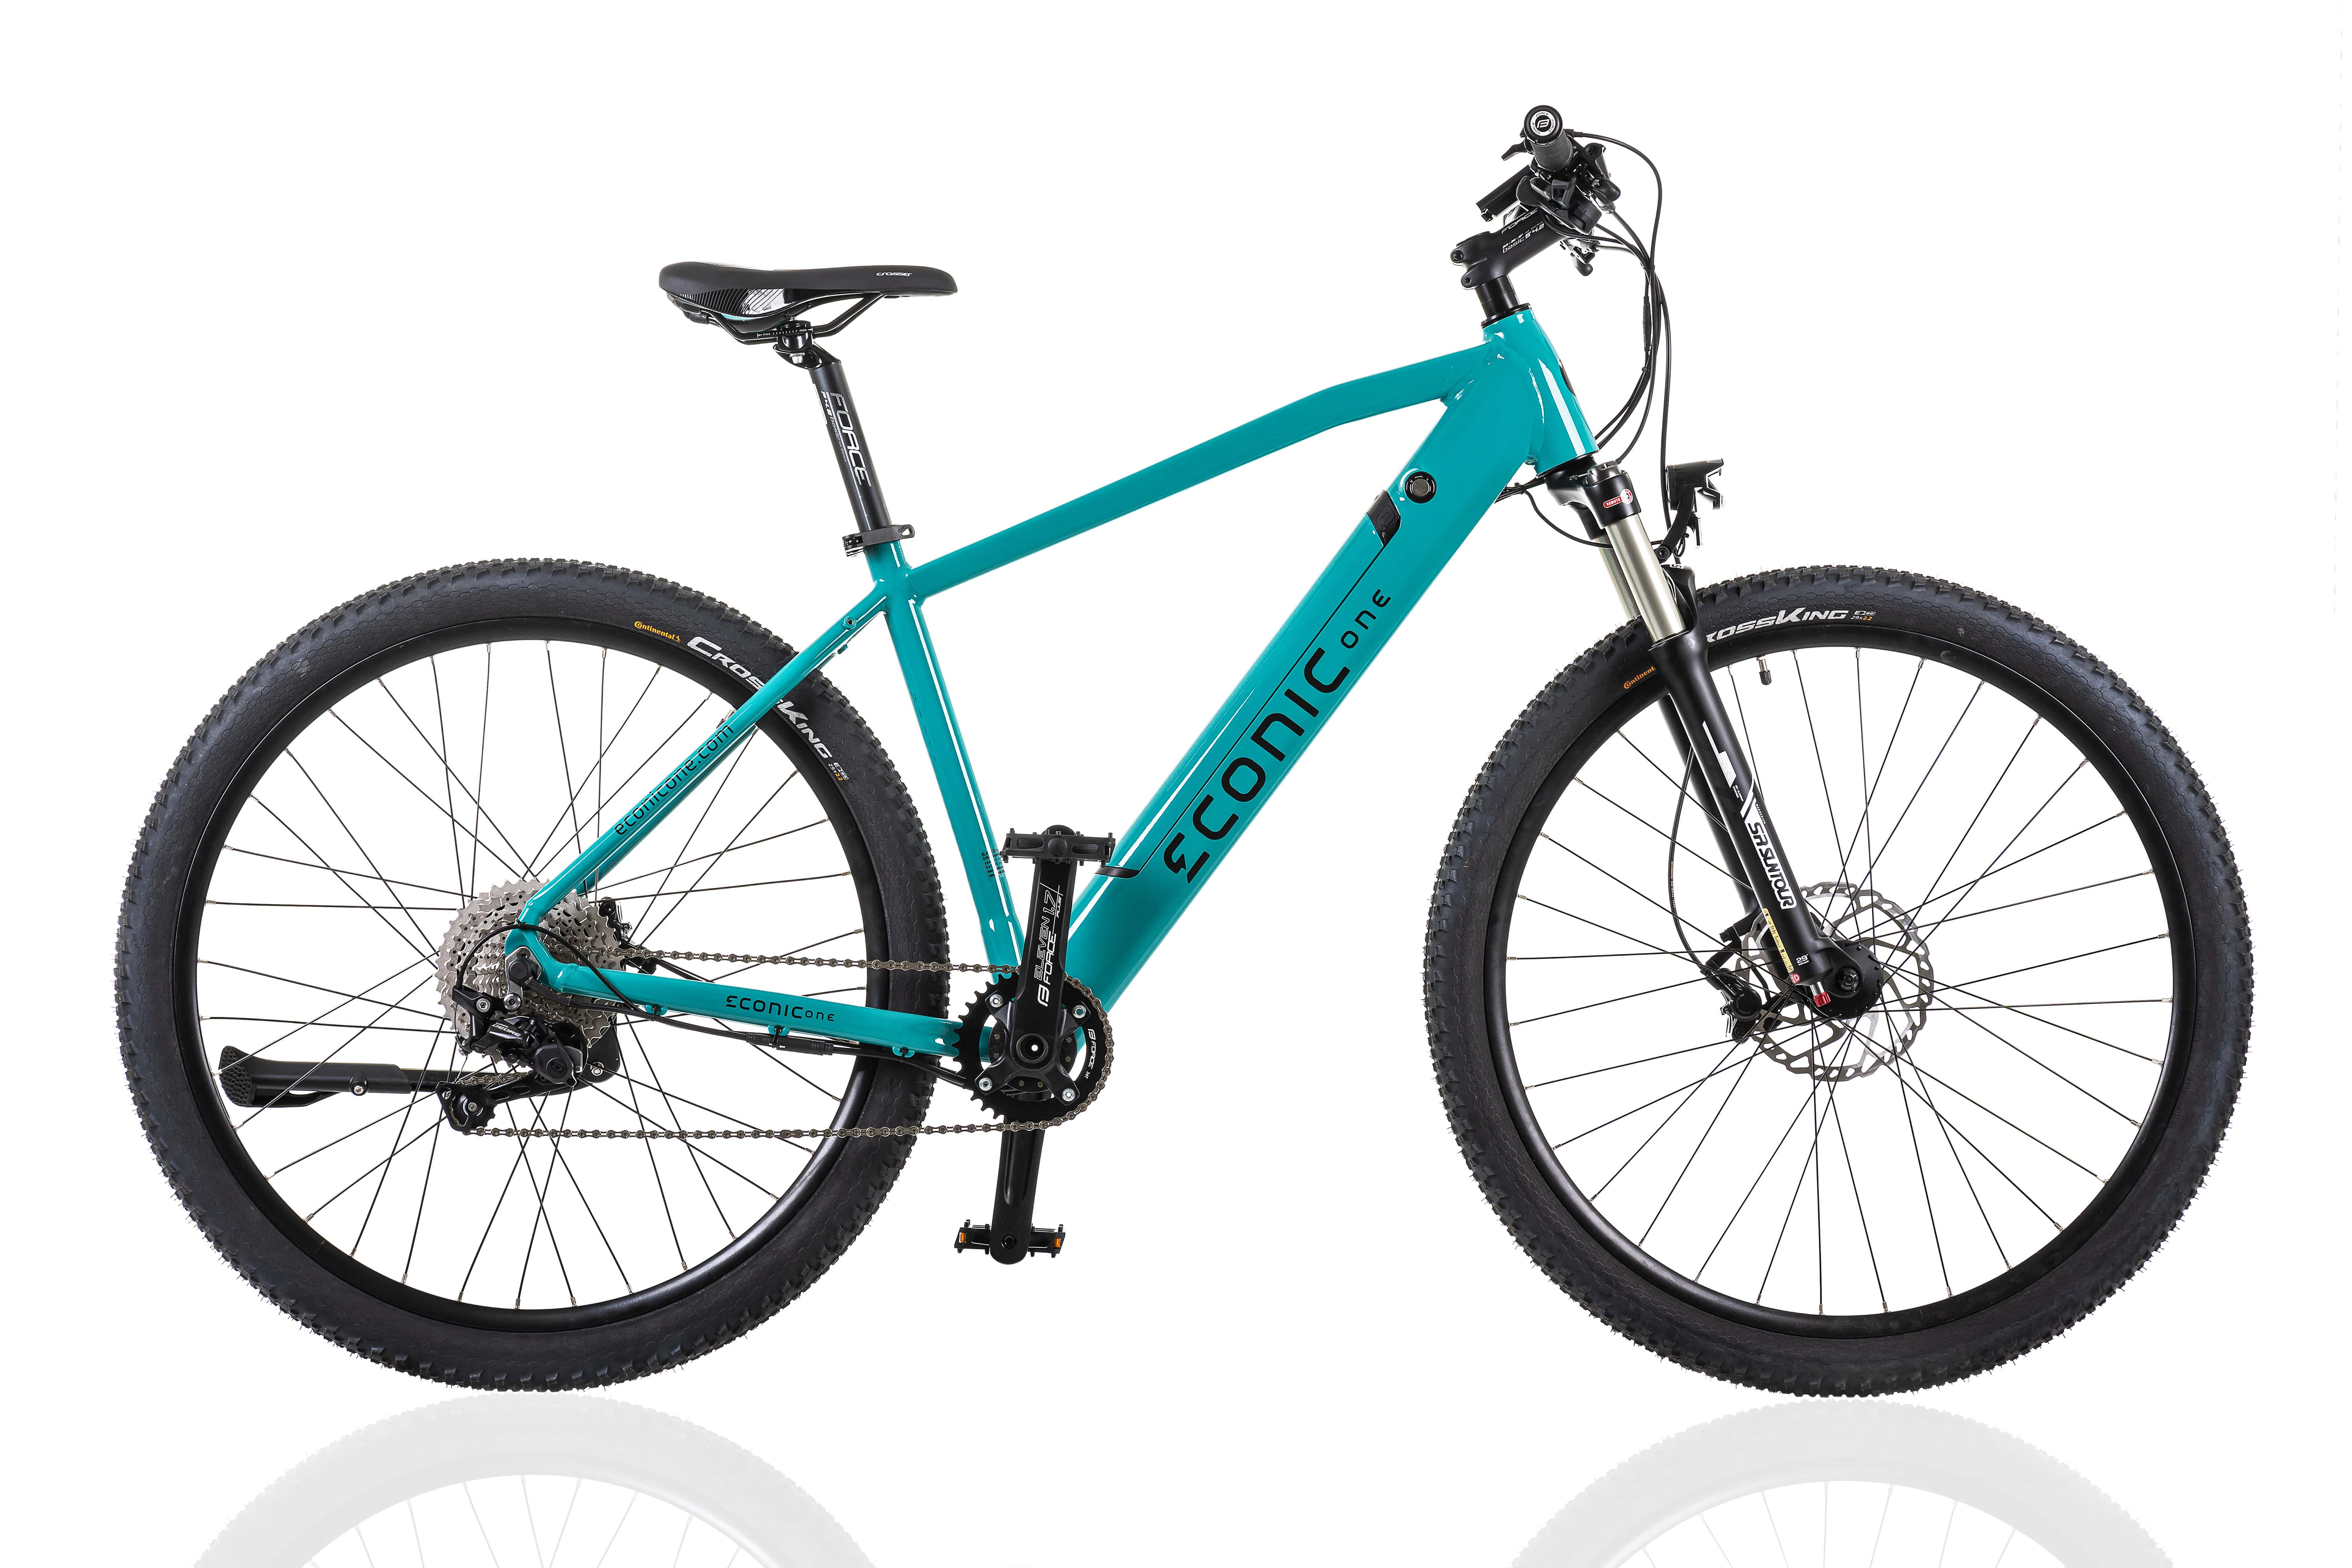 VTC Electrique Econic One Cross-country L 48cm turquoise